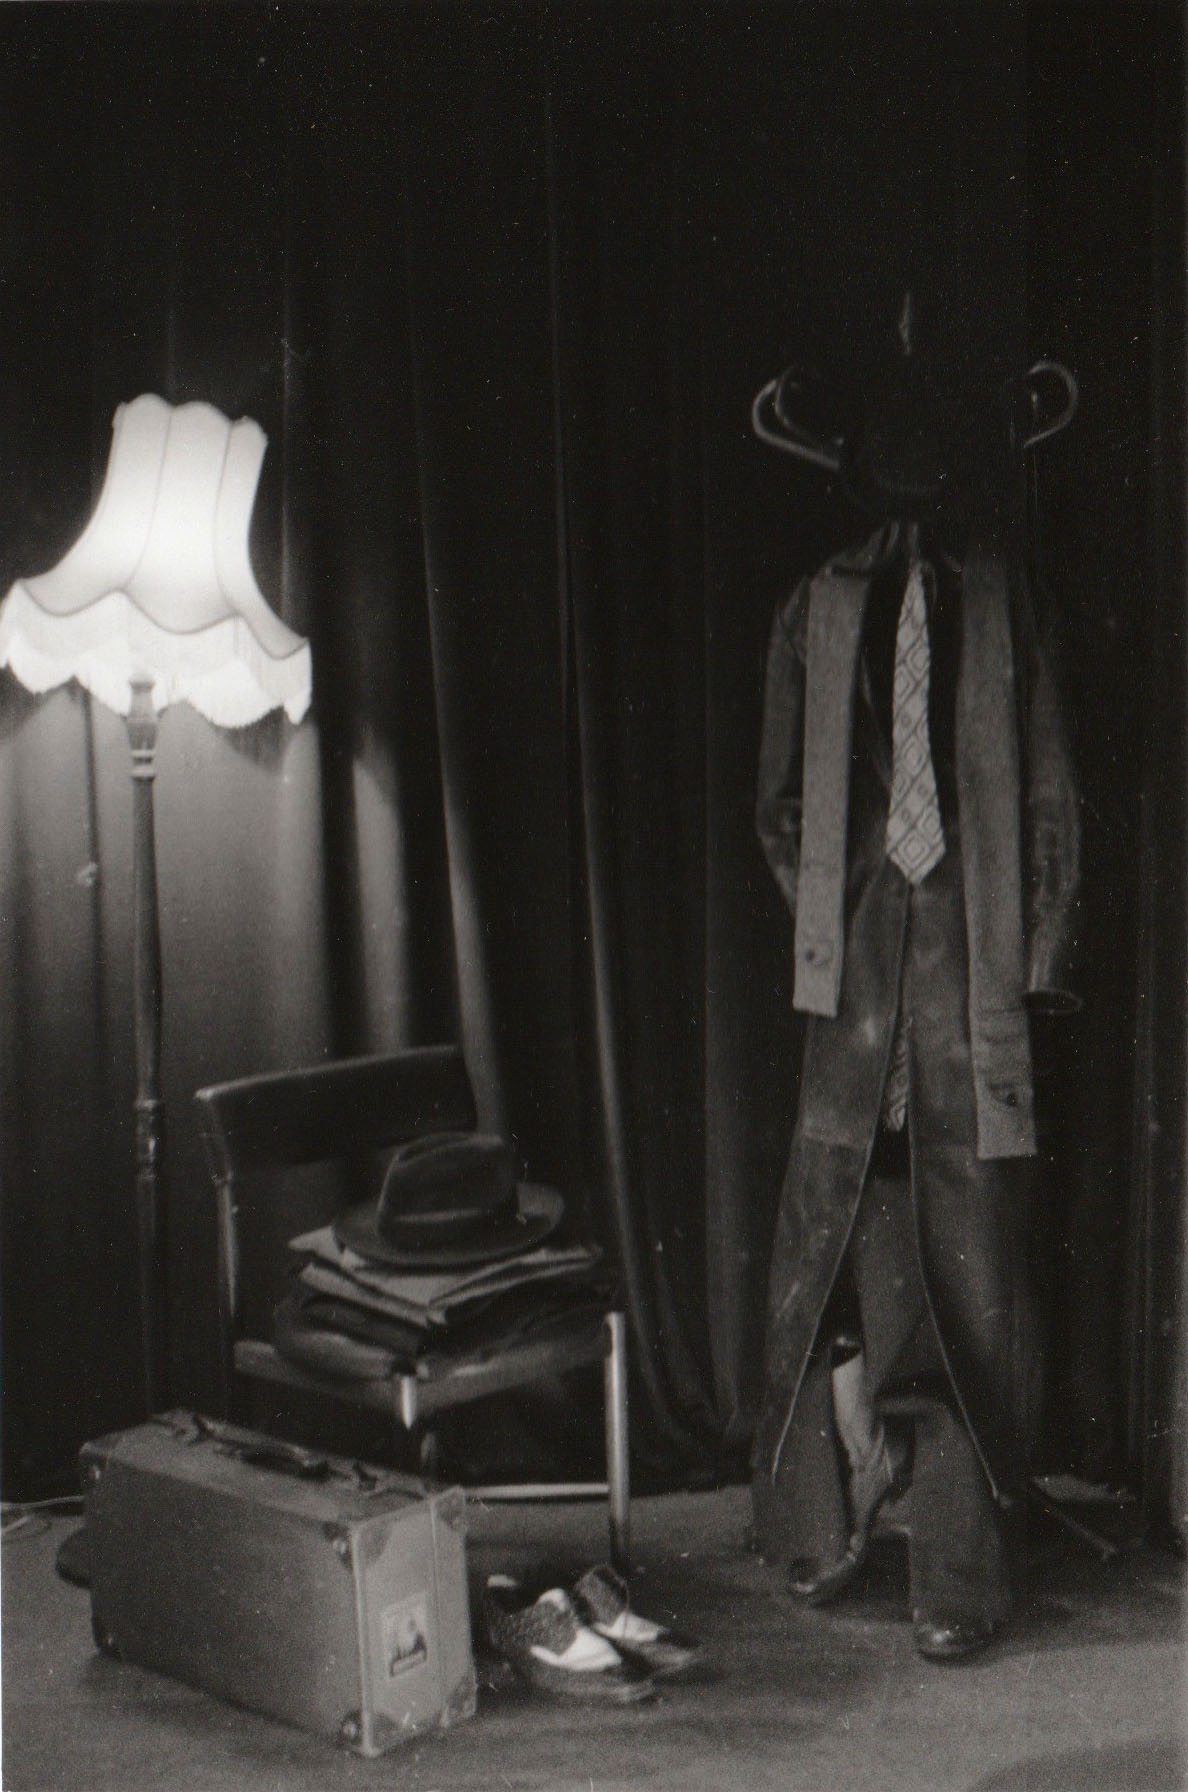 The Suit Case by David Miller